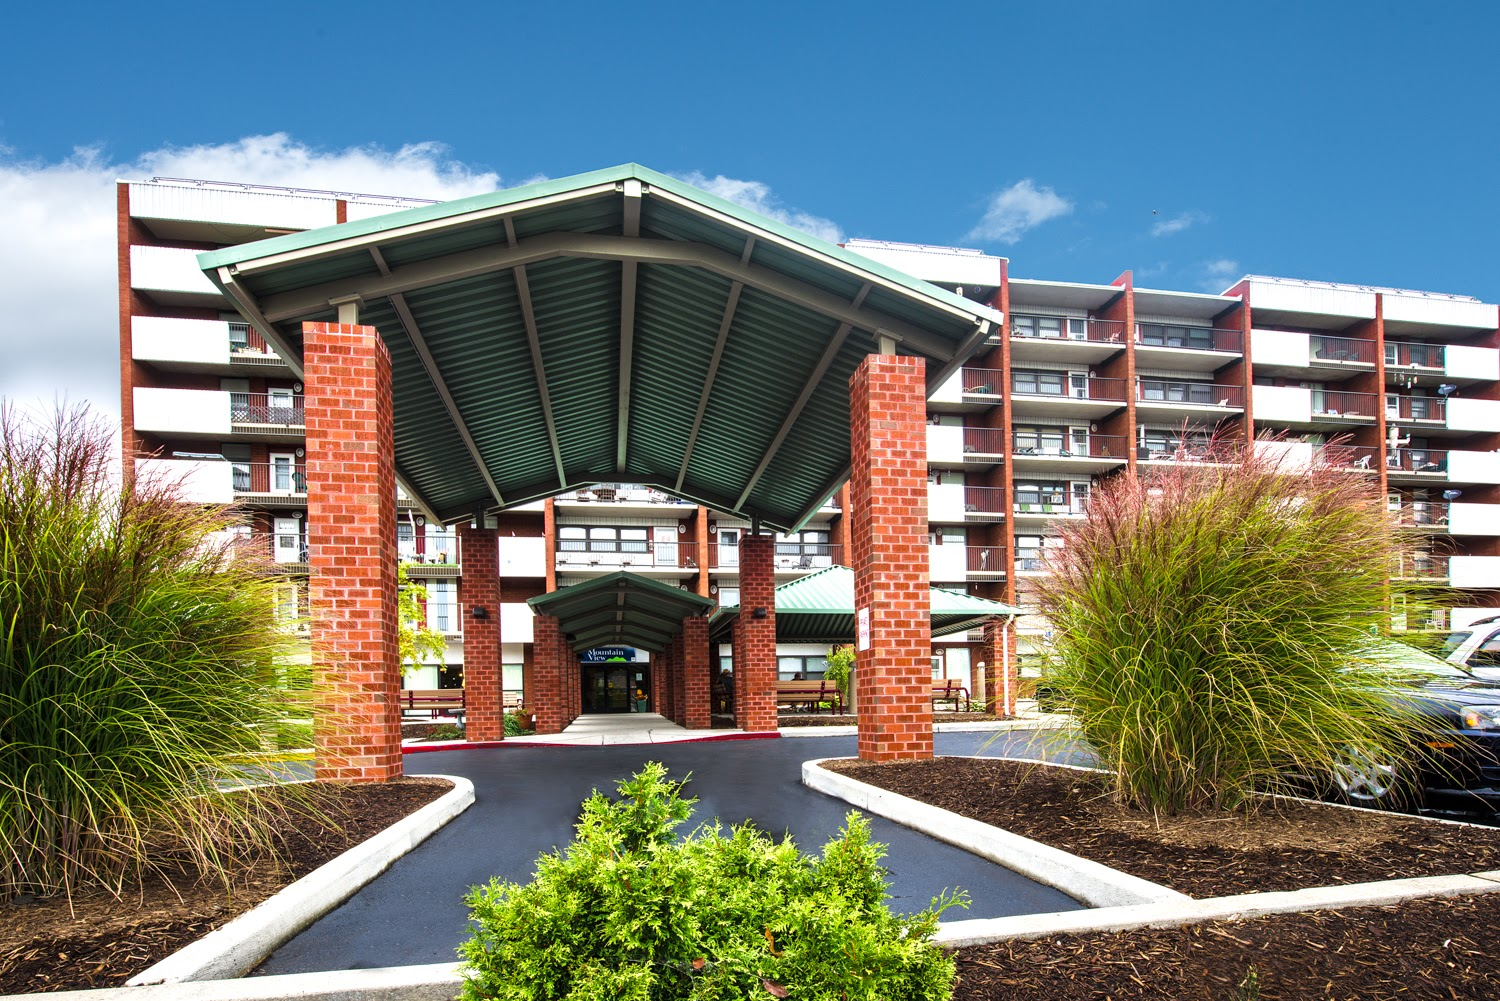 Mountain View Apartments in Cumberland, Maryland is an energy efficiency success story. The building features energy star appliances and lighting, and a green roof with vegetation - all designed to save residents money on electric bills.